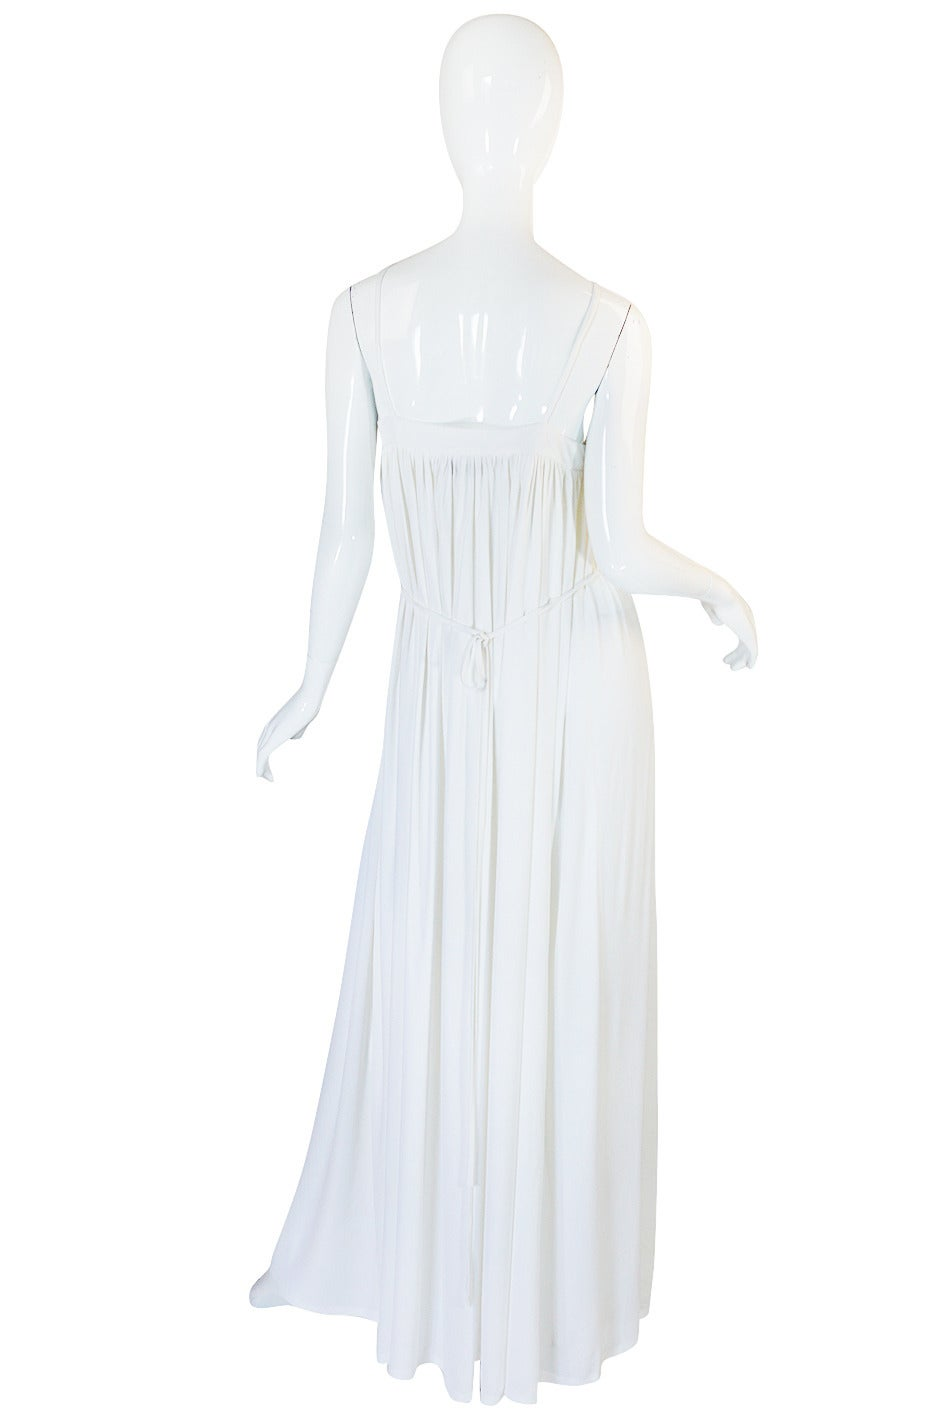 Supermodel length, spectacular silk jersey Quorum gown in a crisp, fresh white that is still pristine and looks unworn. This is so well made and feels so substantial and yet still slinky and sexy at the same time. It is a real marvel of construction